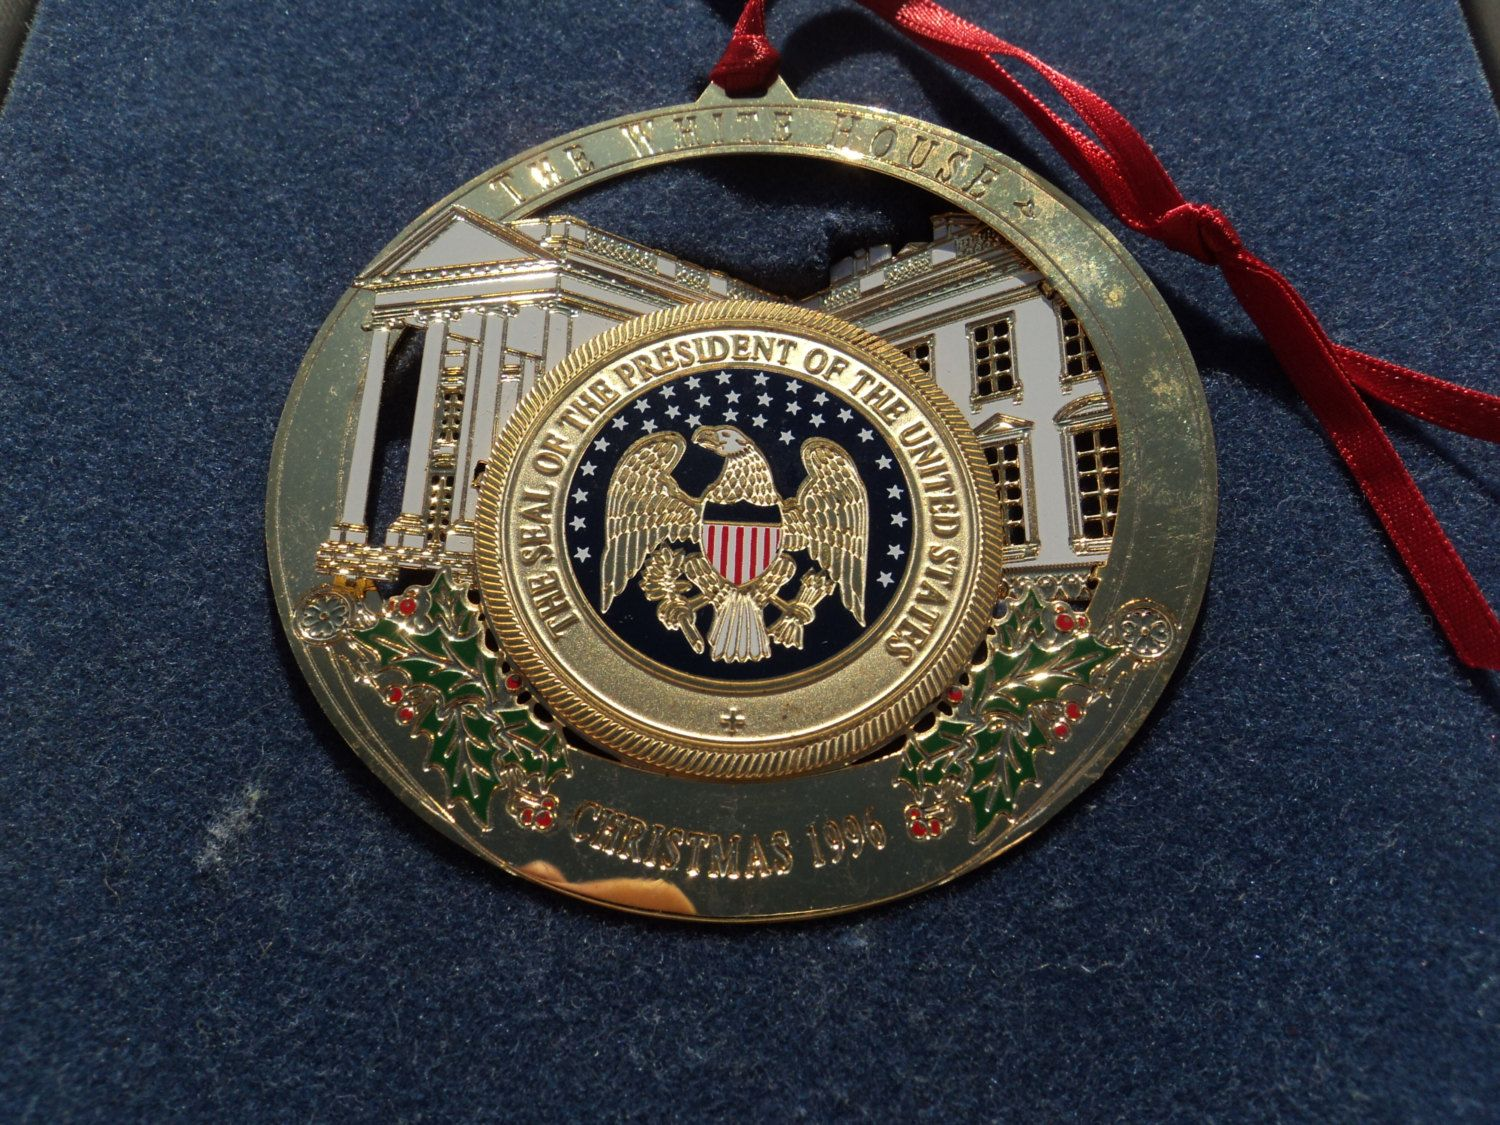 White house christmas ornaments historical society - Christmas Ornament From The White House Historical Society 1996